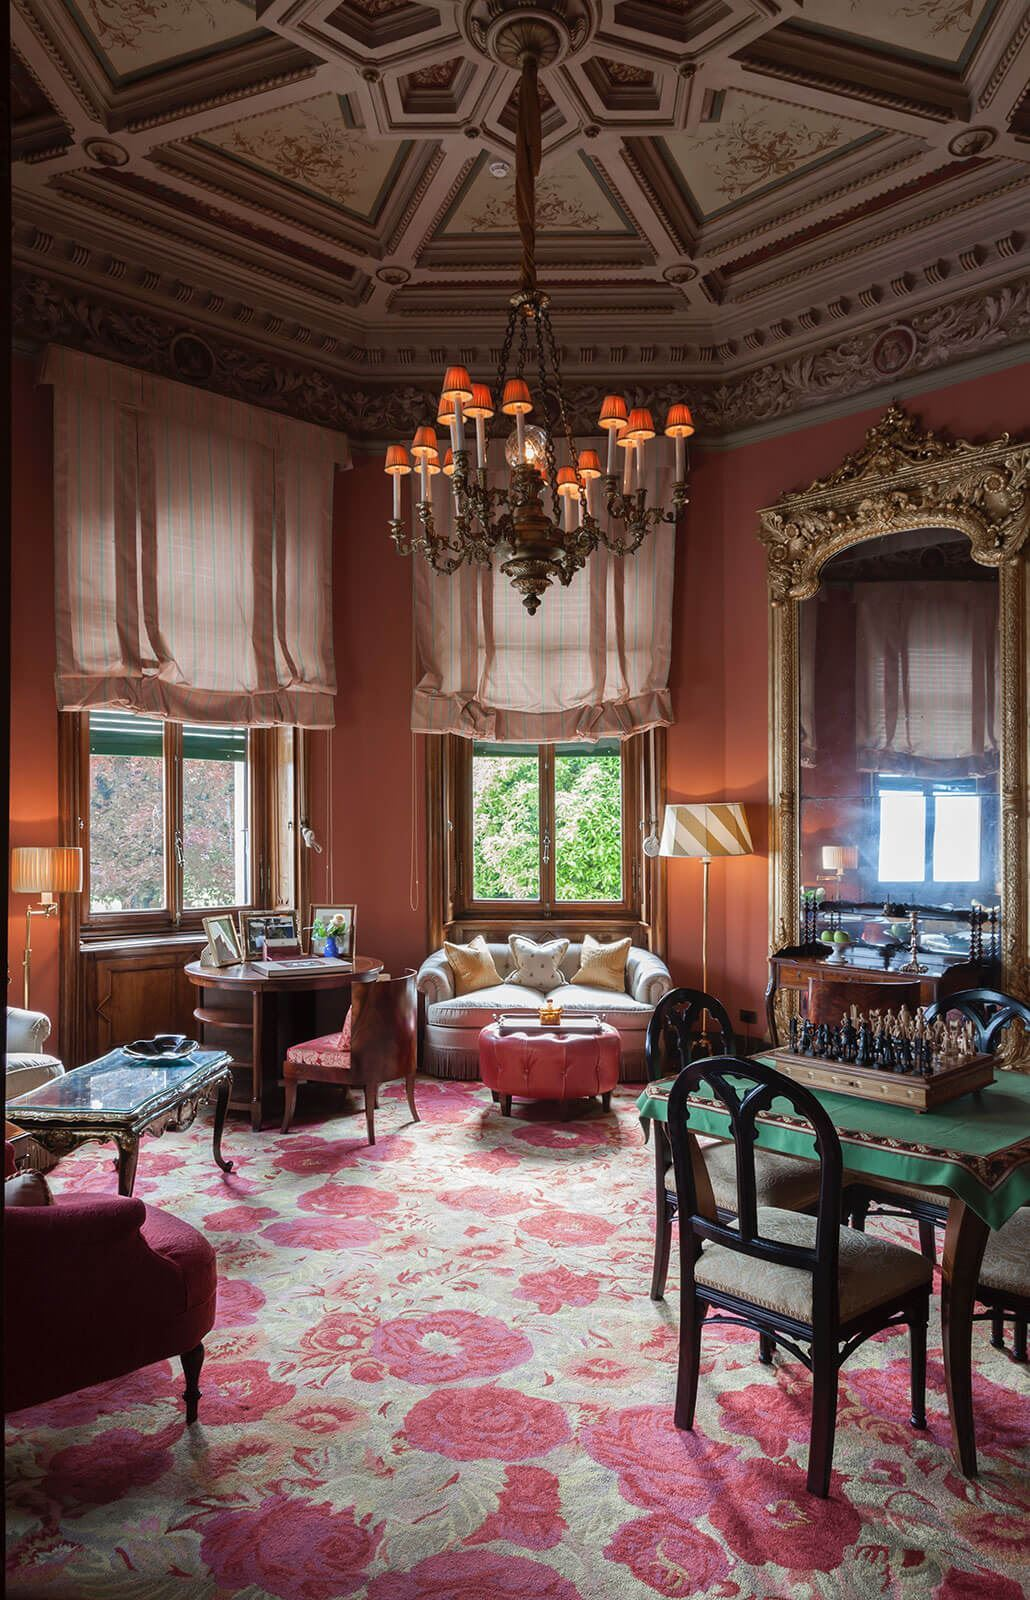 Grand Hotel a Villa Feltrinelli - homely welcoming atmosphere